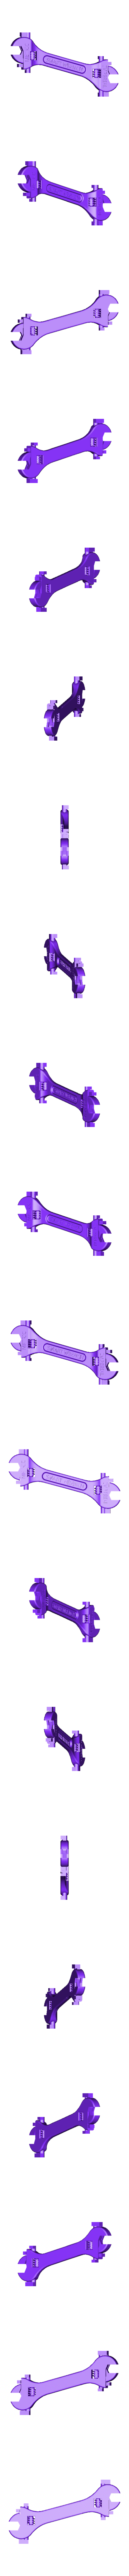 SmartWrench-Global.stl Download free STL file Fully assembled 3D printable SMART wrench • 3D printer design, bLiTzJoN